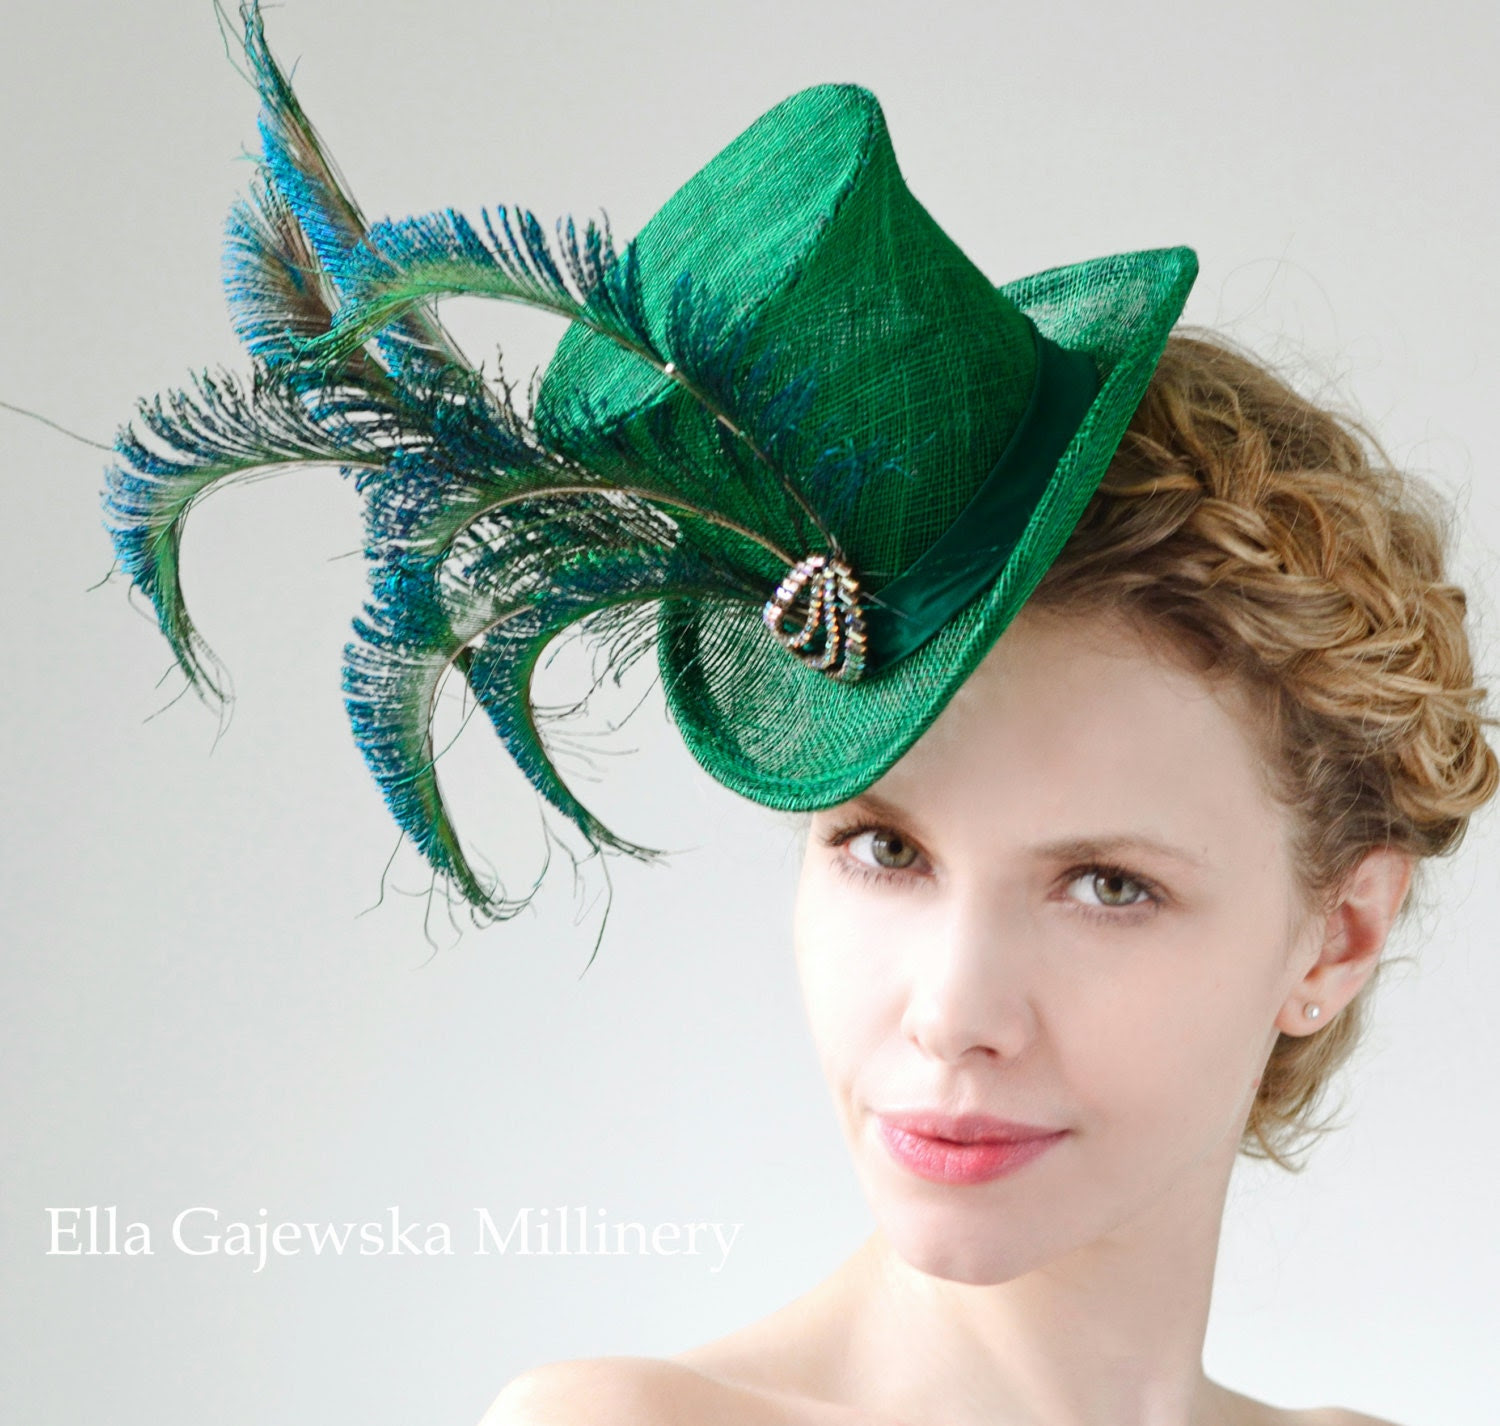 Emerald-Green-Mini-Straw-Elegant-Top-Hat-Peacock-Feathers-Accessories-Wedding-Accessory-Wear-Party-Fascinator-Derby-Hats-Ascot-Steampunk